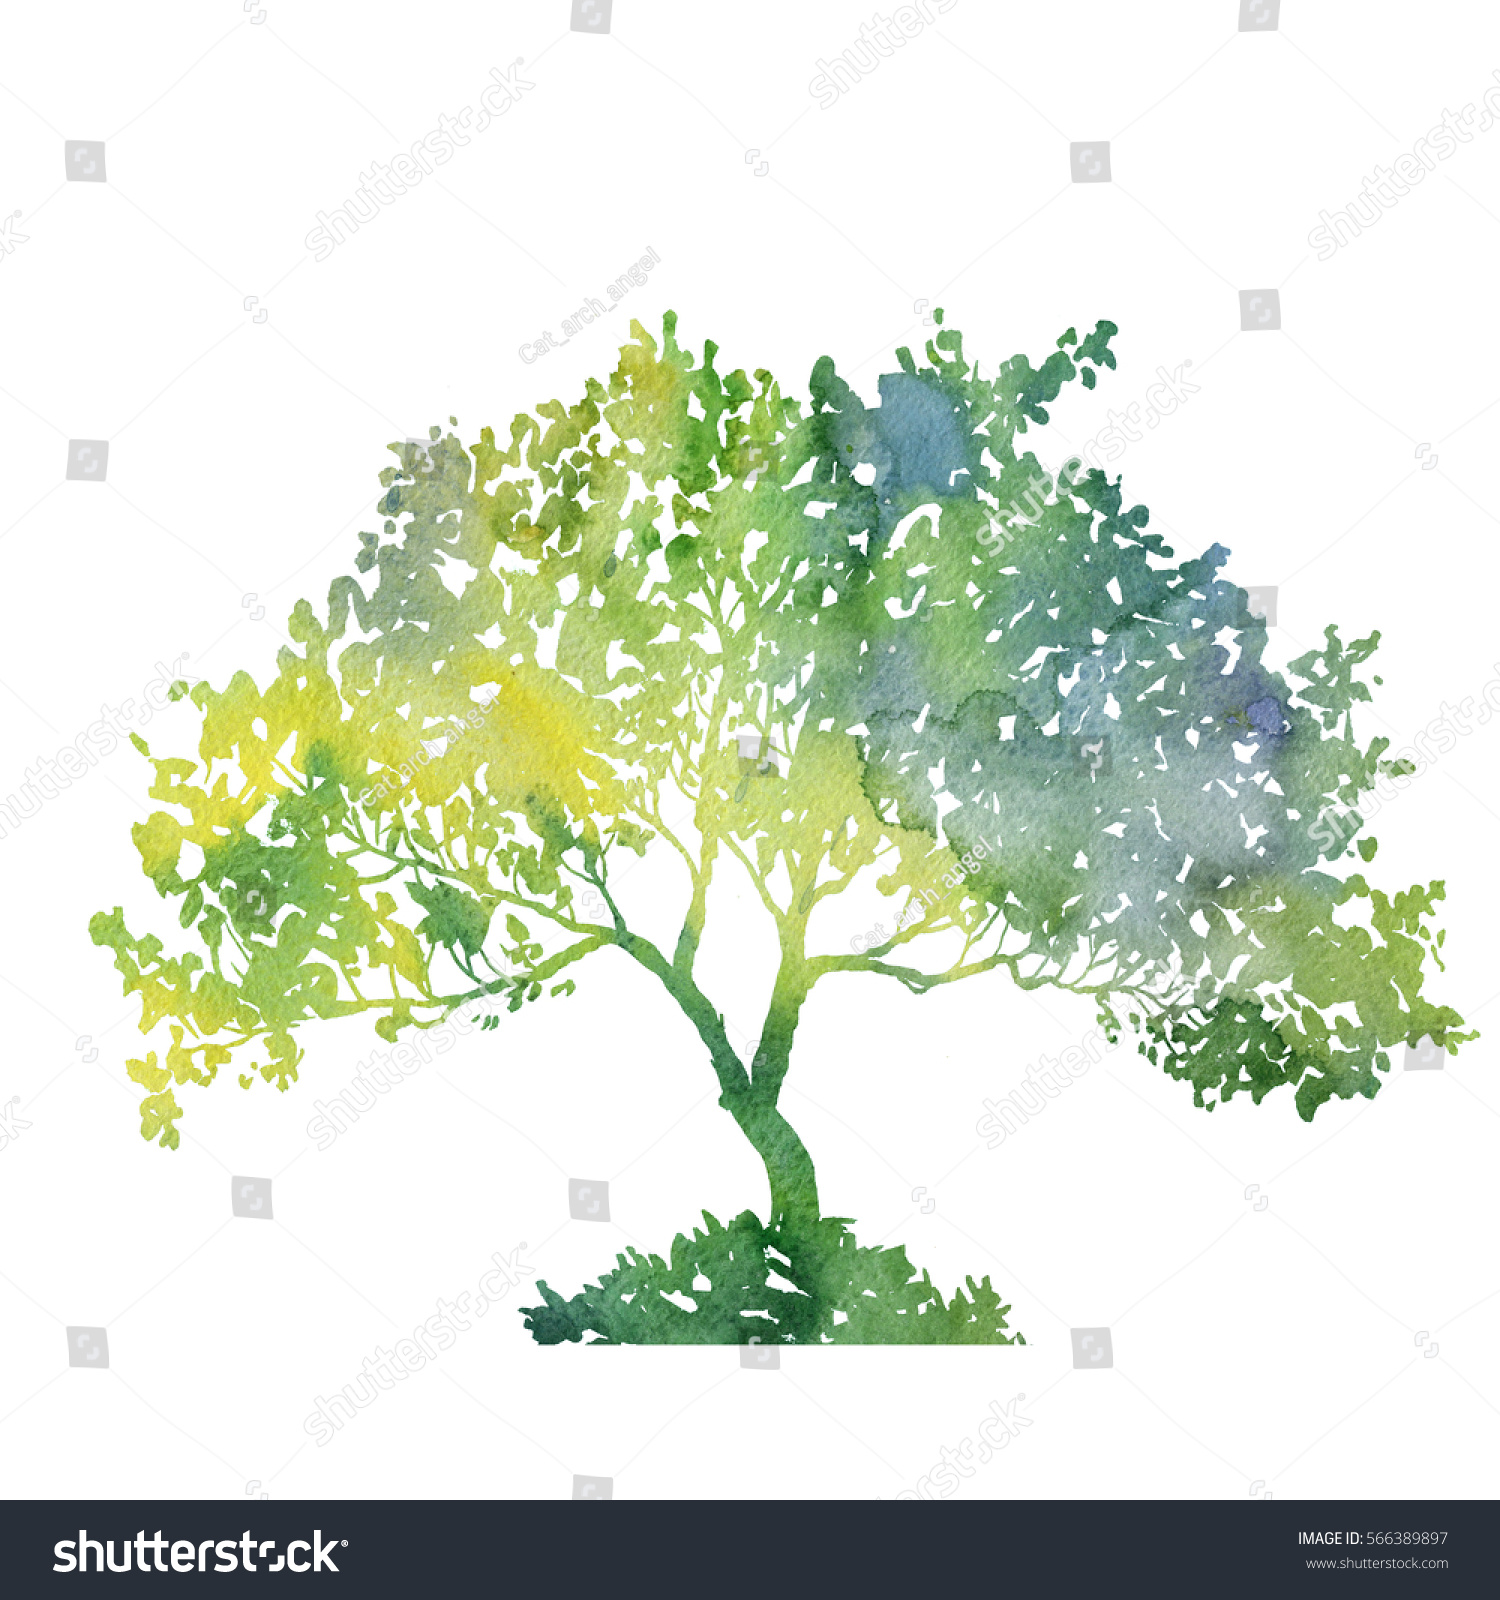 Silhouette Green Tree Leaves Drawing Watercolor Stock Illustration ...